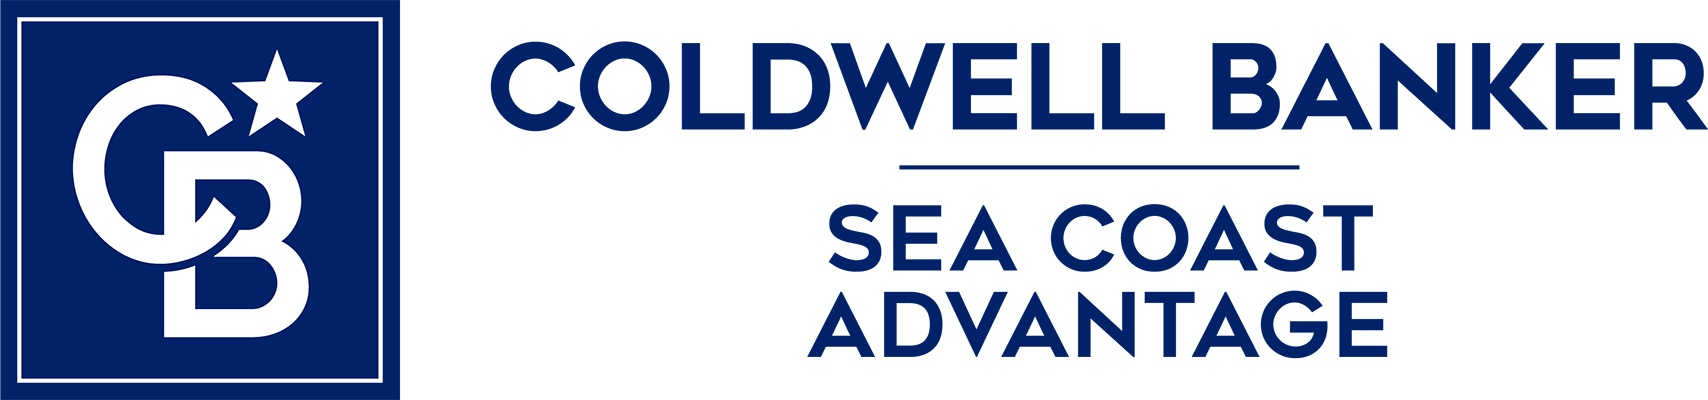 Michelle Gurrera - Coldwell Banker Sea Coast Advantage Realty Logo